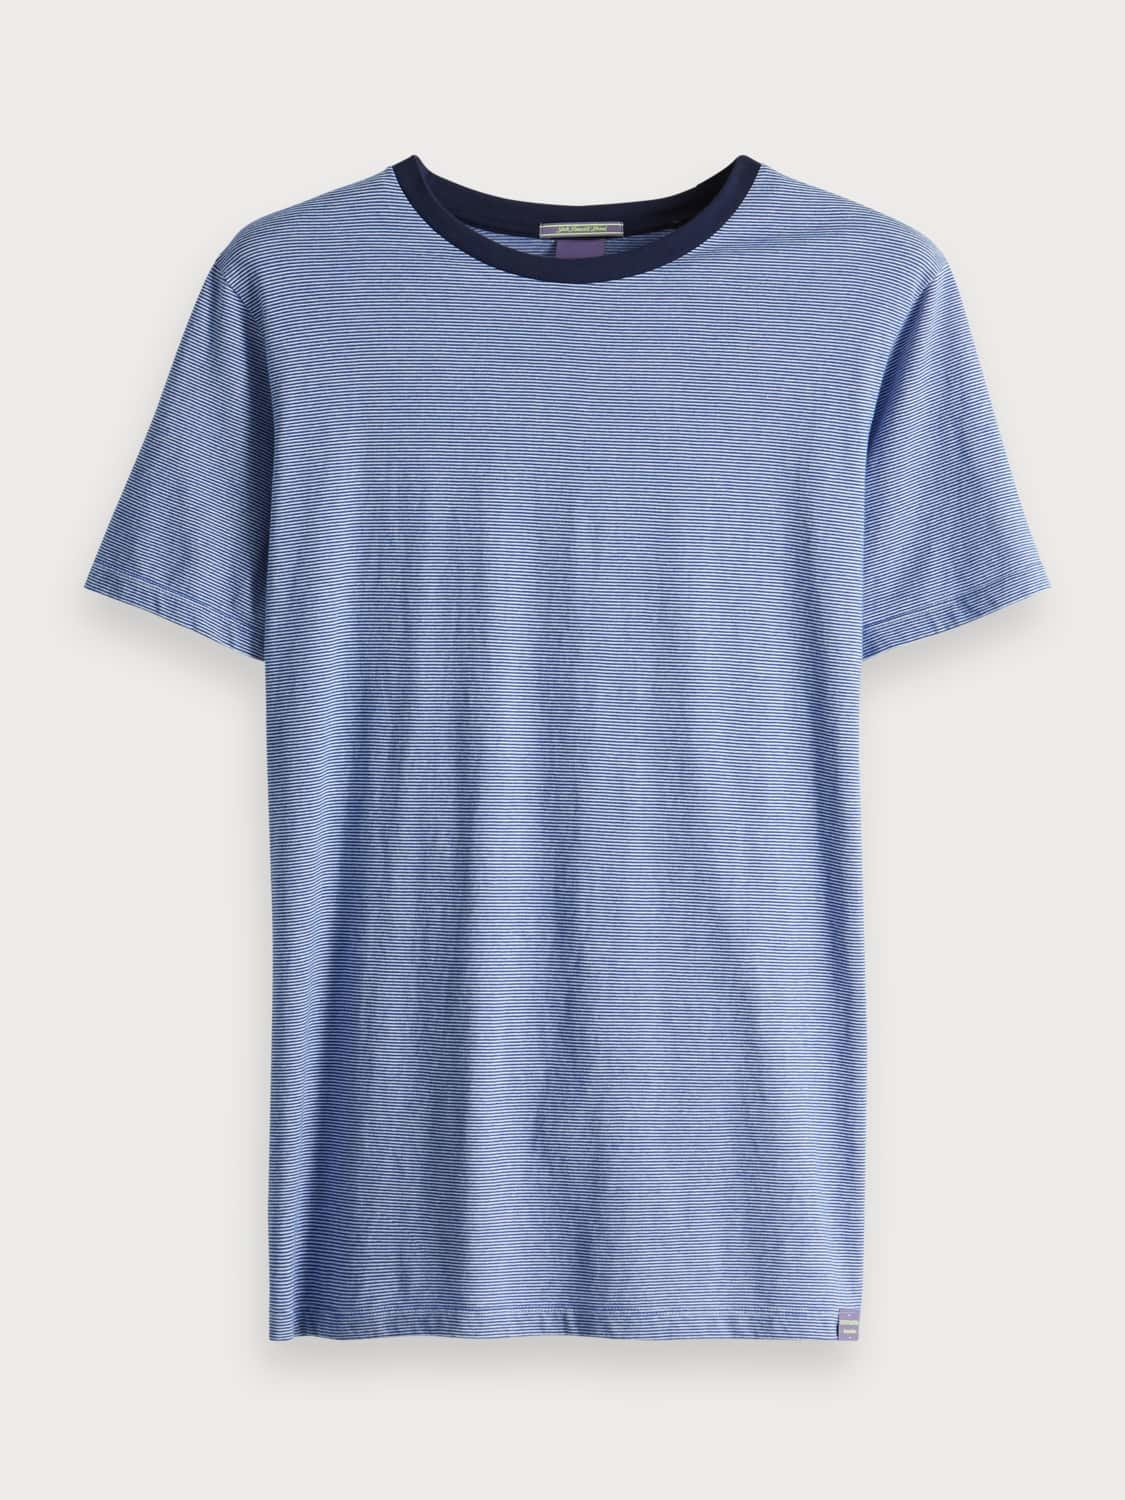 Scotch & Soda Scotch & Soda Classic crewneck tee